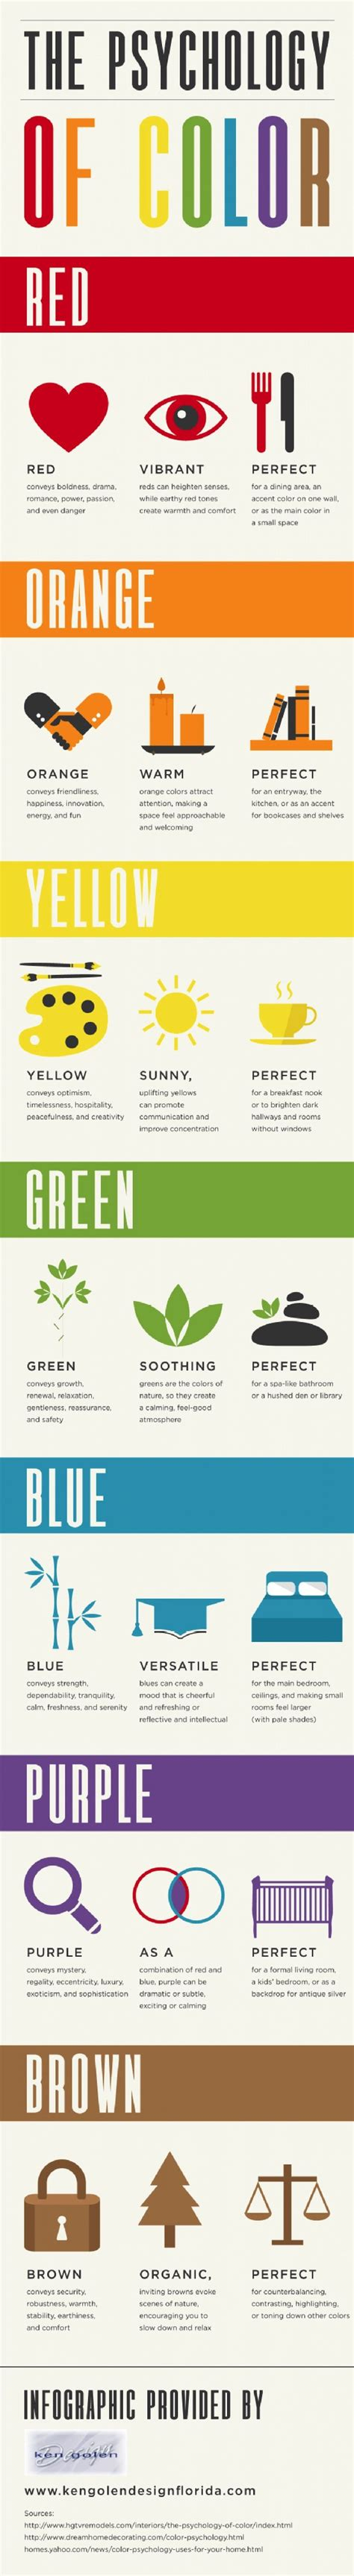 Infographic The Psycology Of Colour